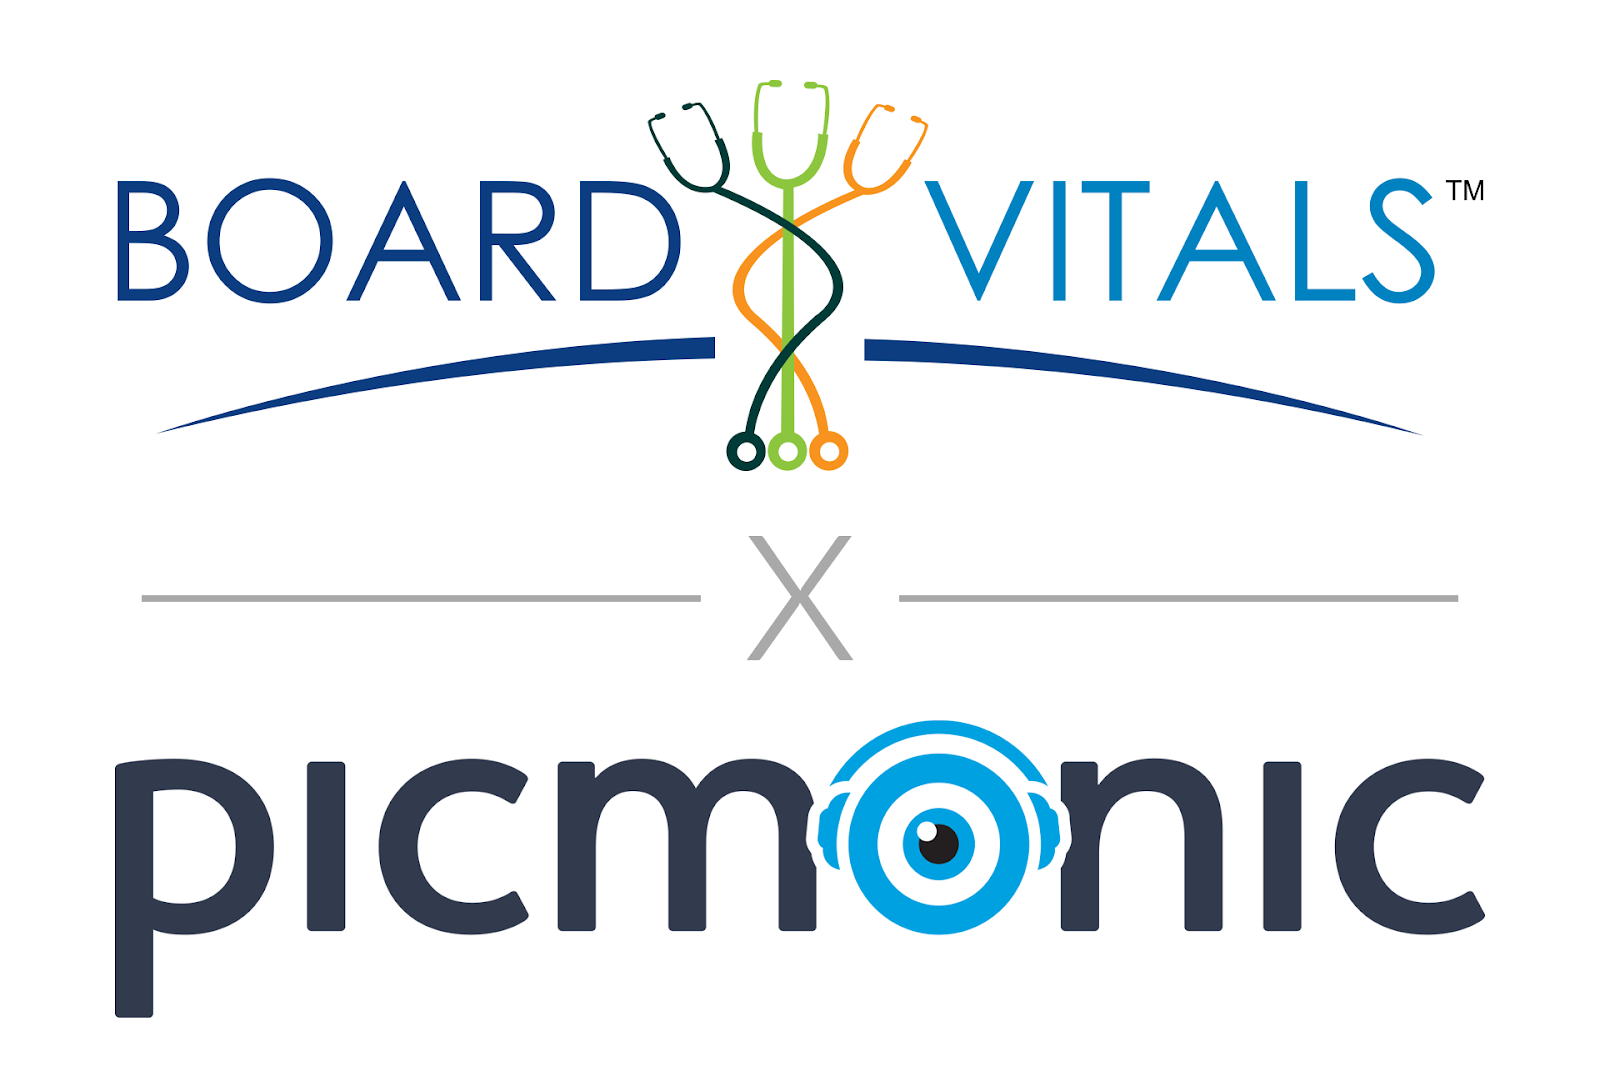 BoardVitals and Picmonic